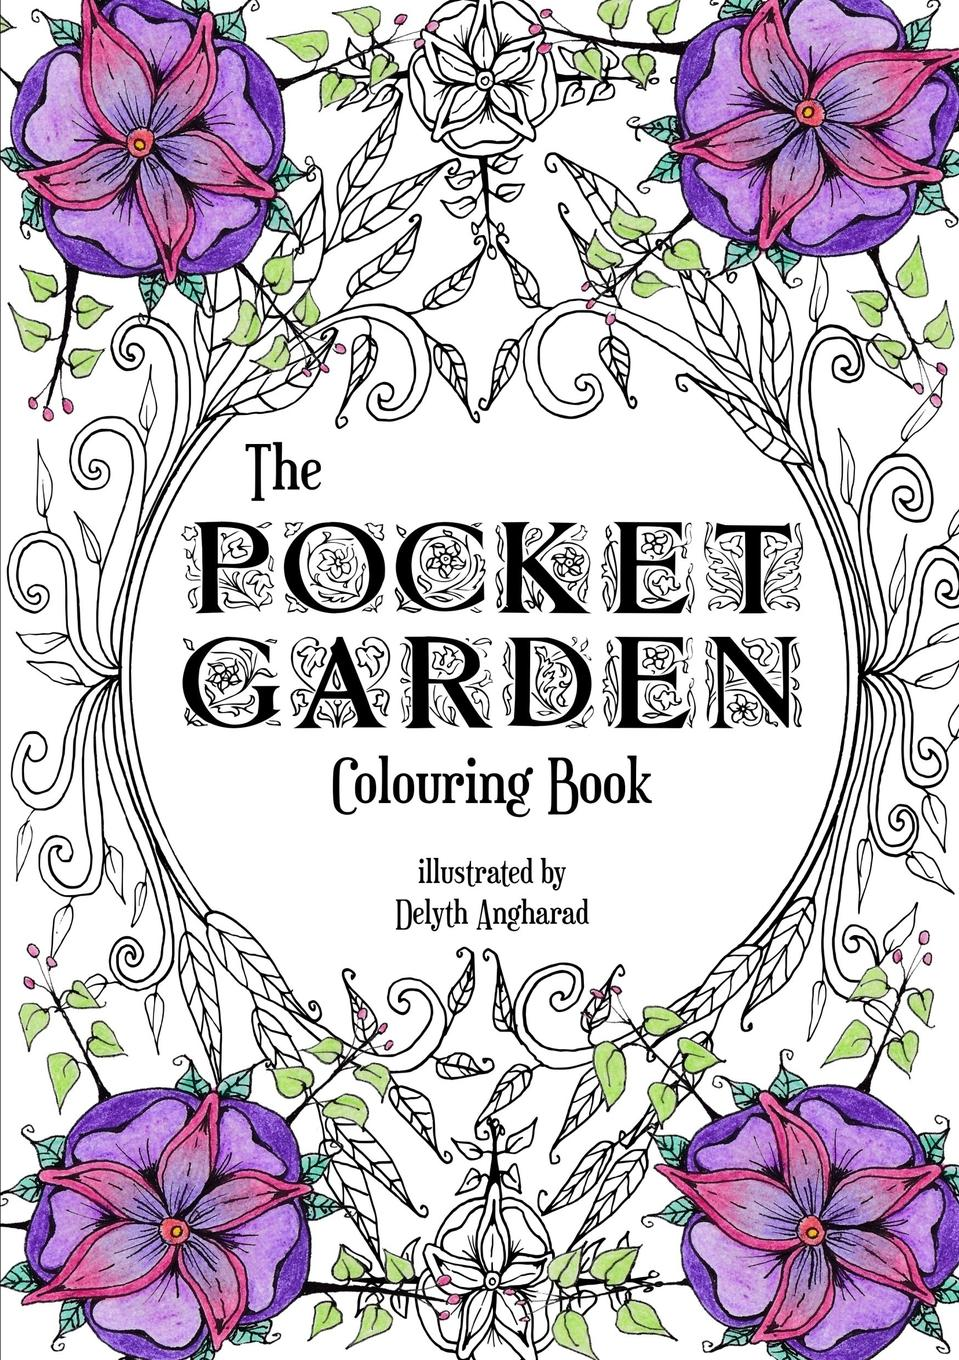 Delyth Angharad The Pocket Garden Colouring Book - A5 Edition british museum around the world colouring book